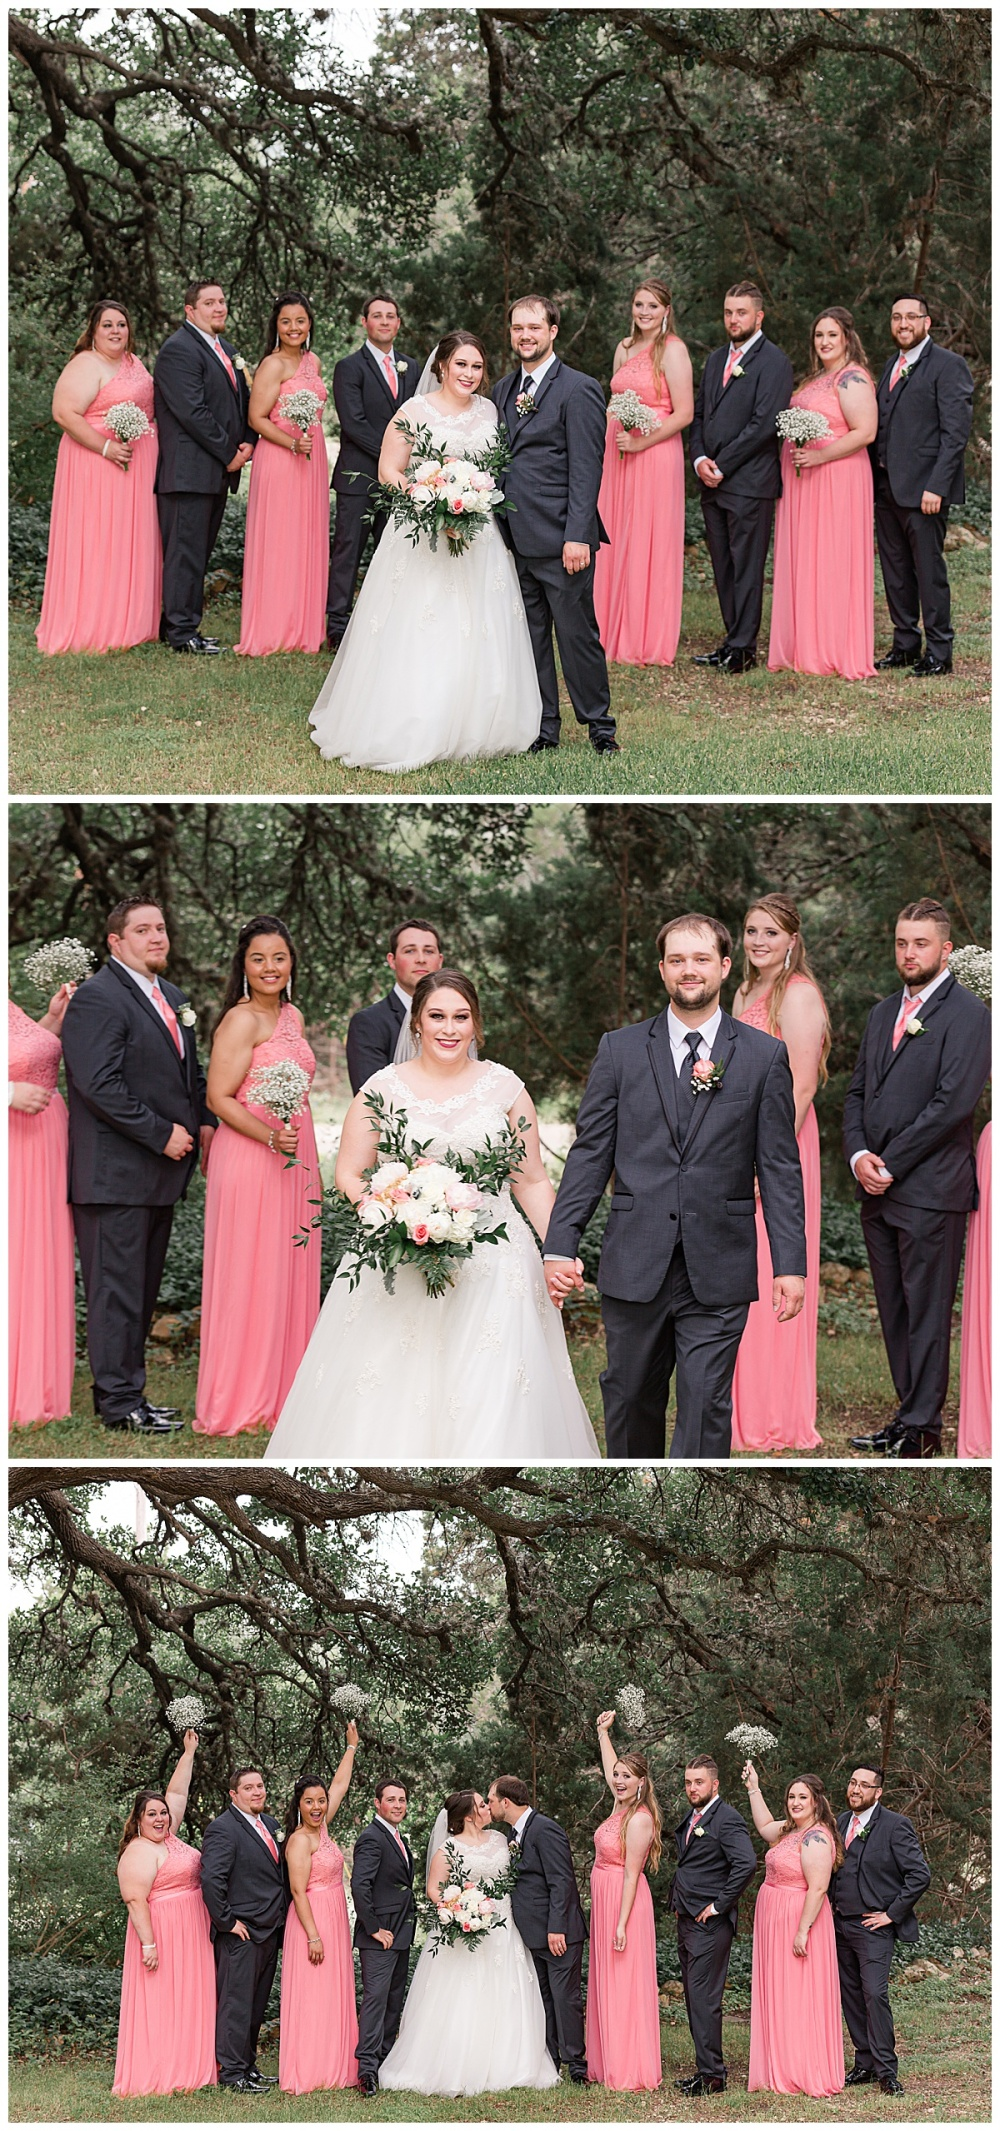 Michael-Tiffany-Wedding-New-Braunfels-Texas-Canyon-Lake-Cabins-and-Cottages-Carly-Barton-Photography_0031.jpg